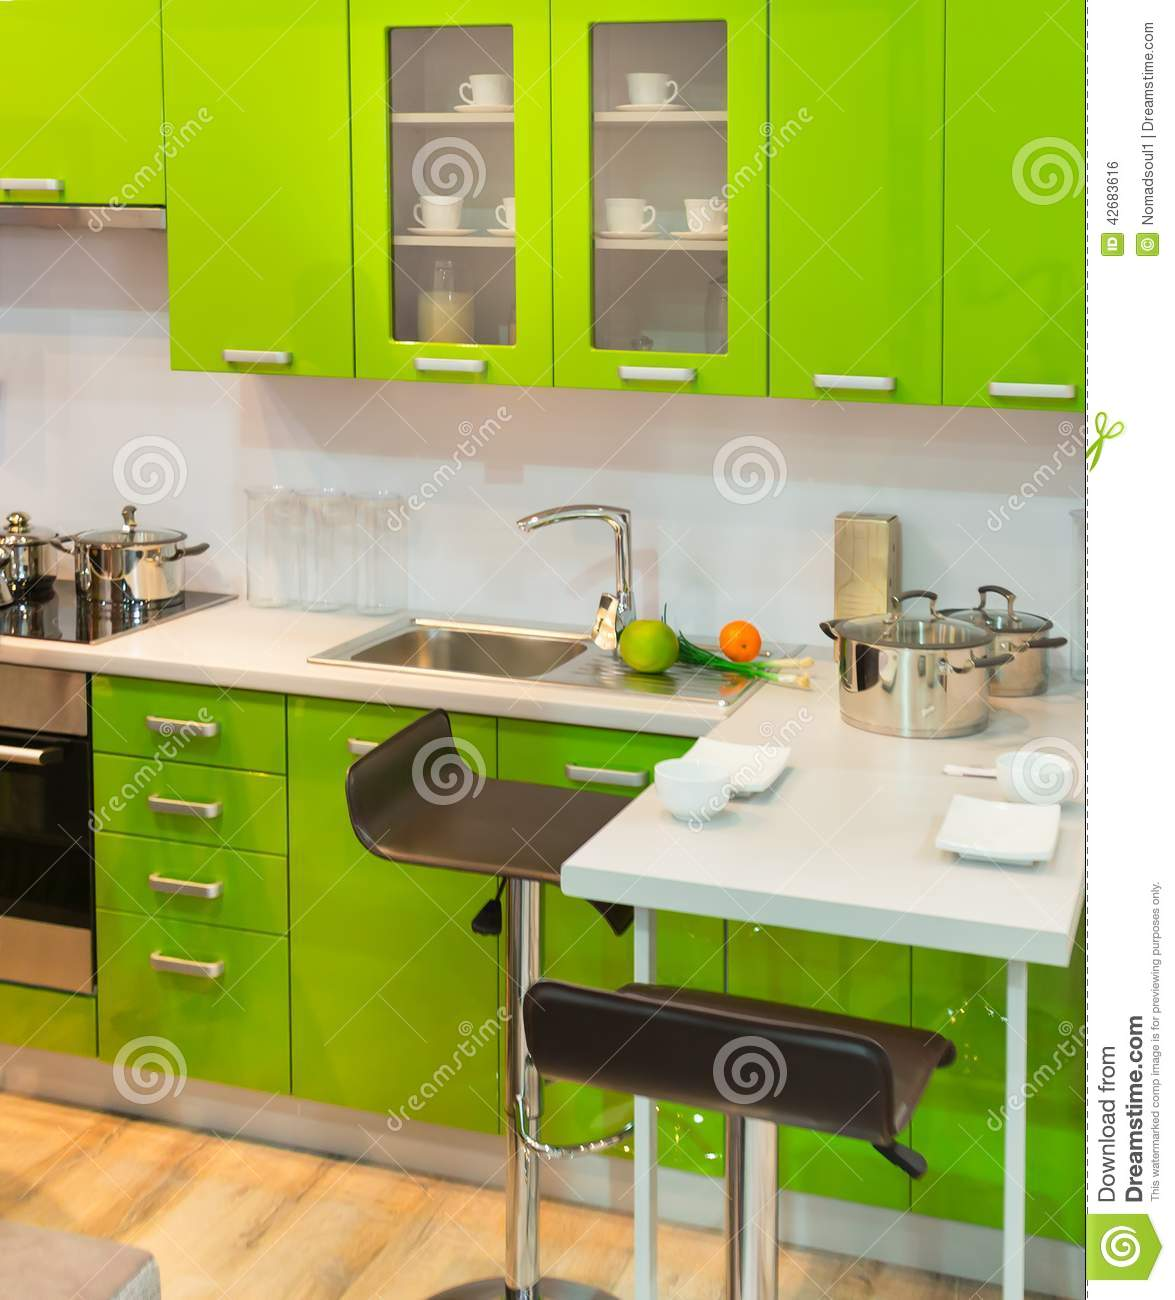 Modern green kitchen clean interior design stock photo Modern green kitchen ideas